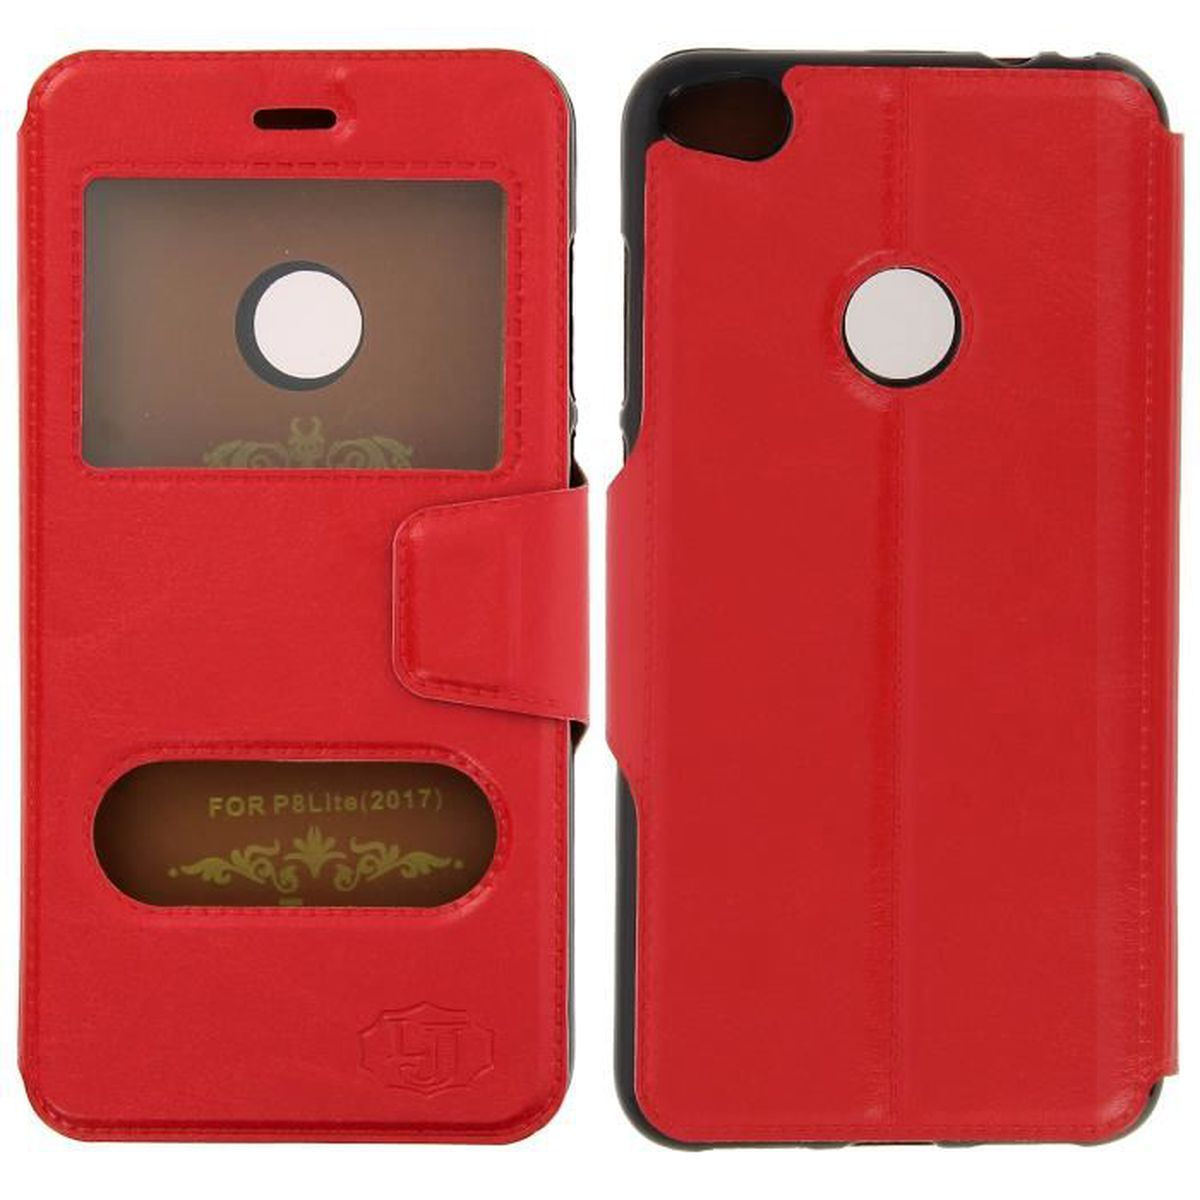 huawei p8 lite coque rouge